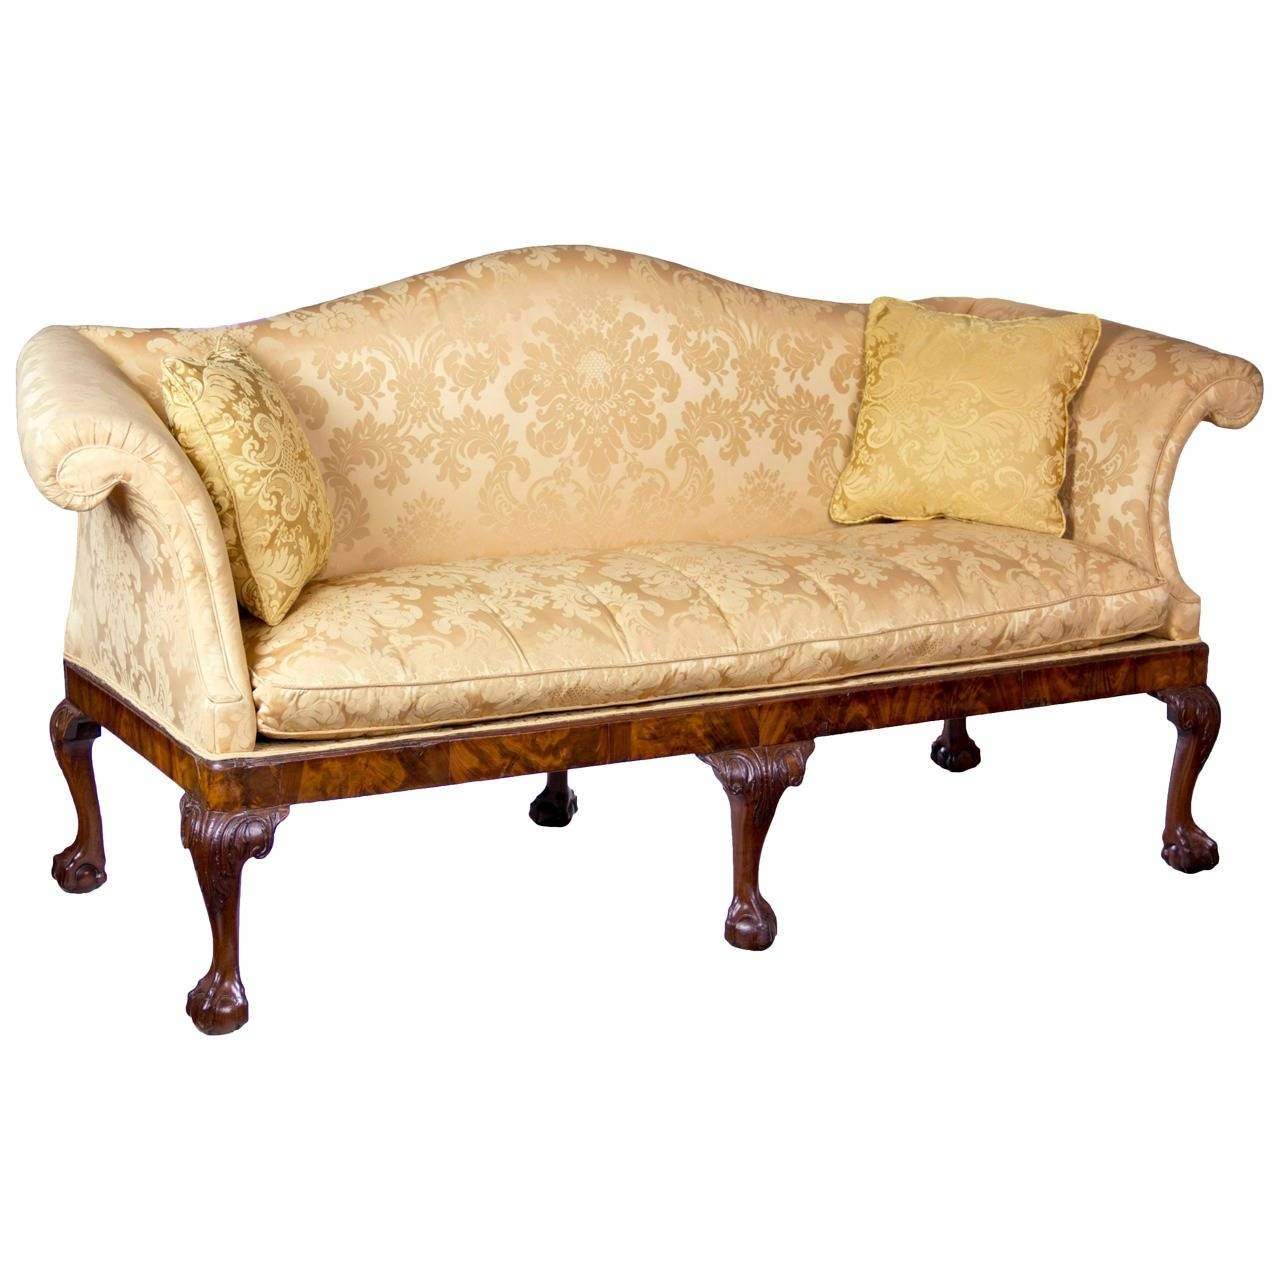 English Sofas - 137 For Sale At 1Stdibs with Chintz Sofas (Image 14 of 22)